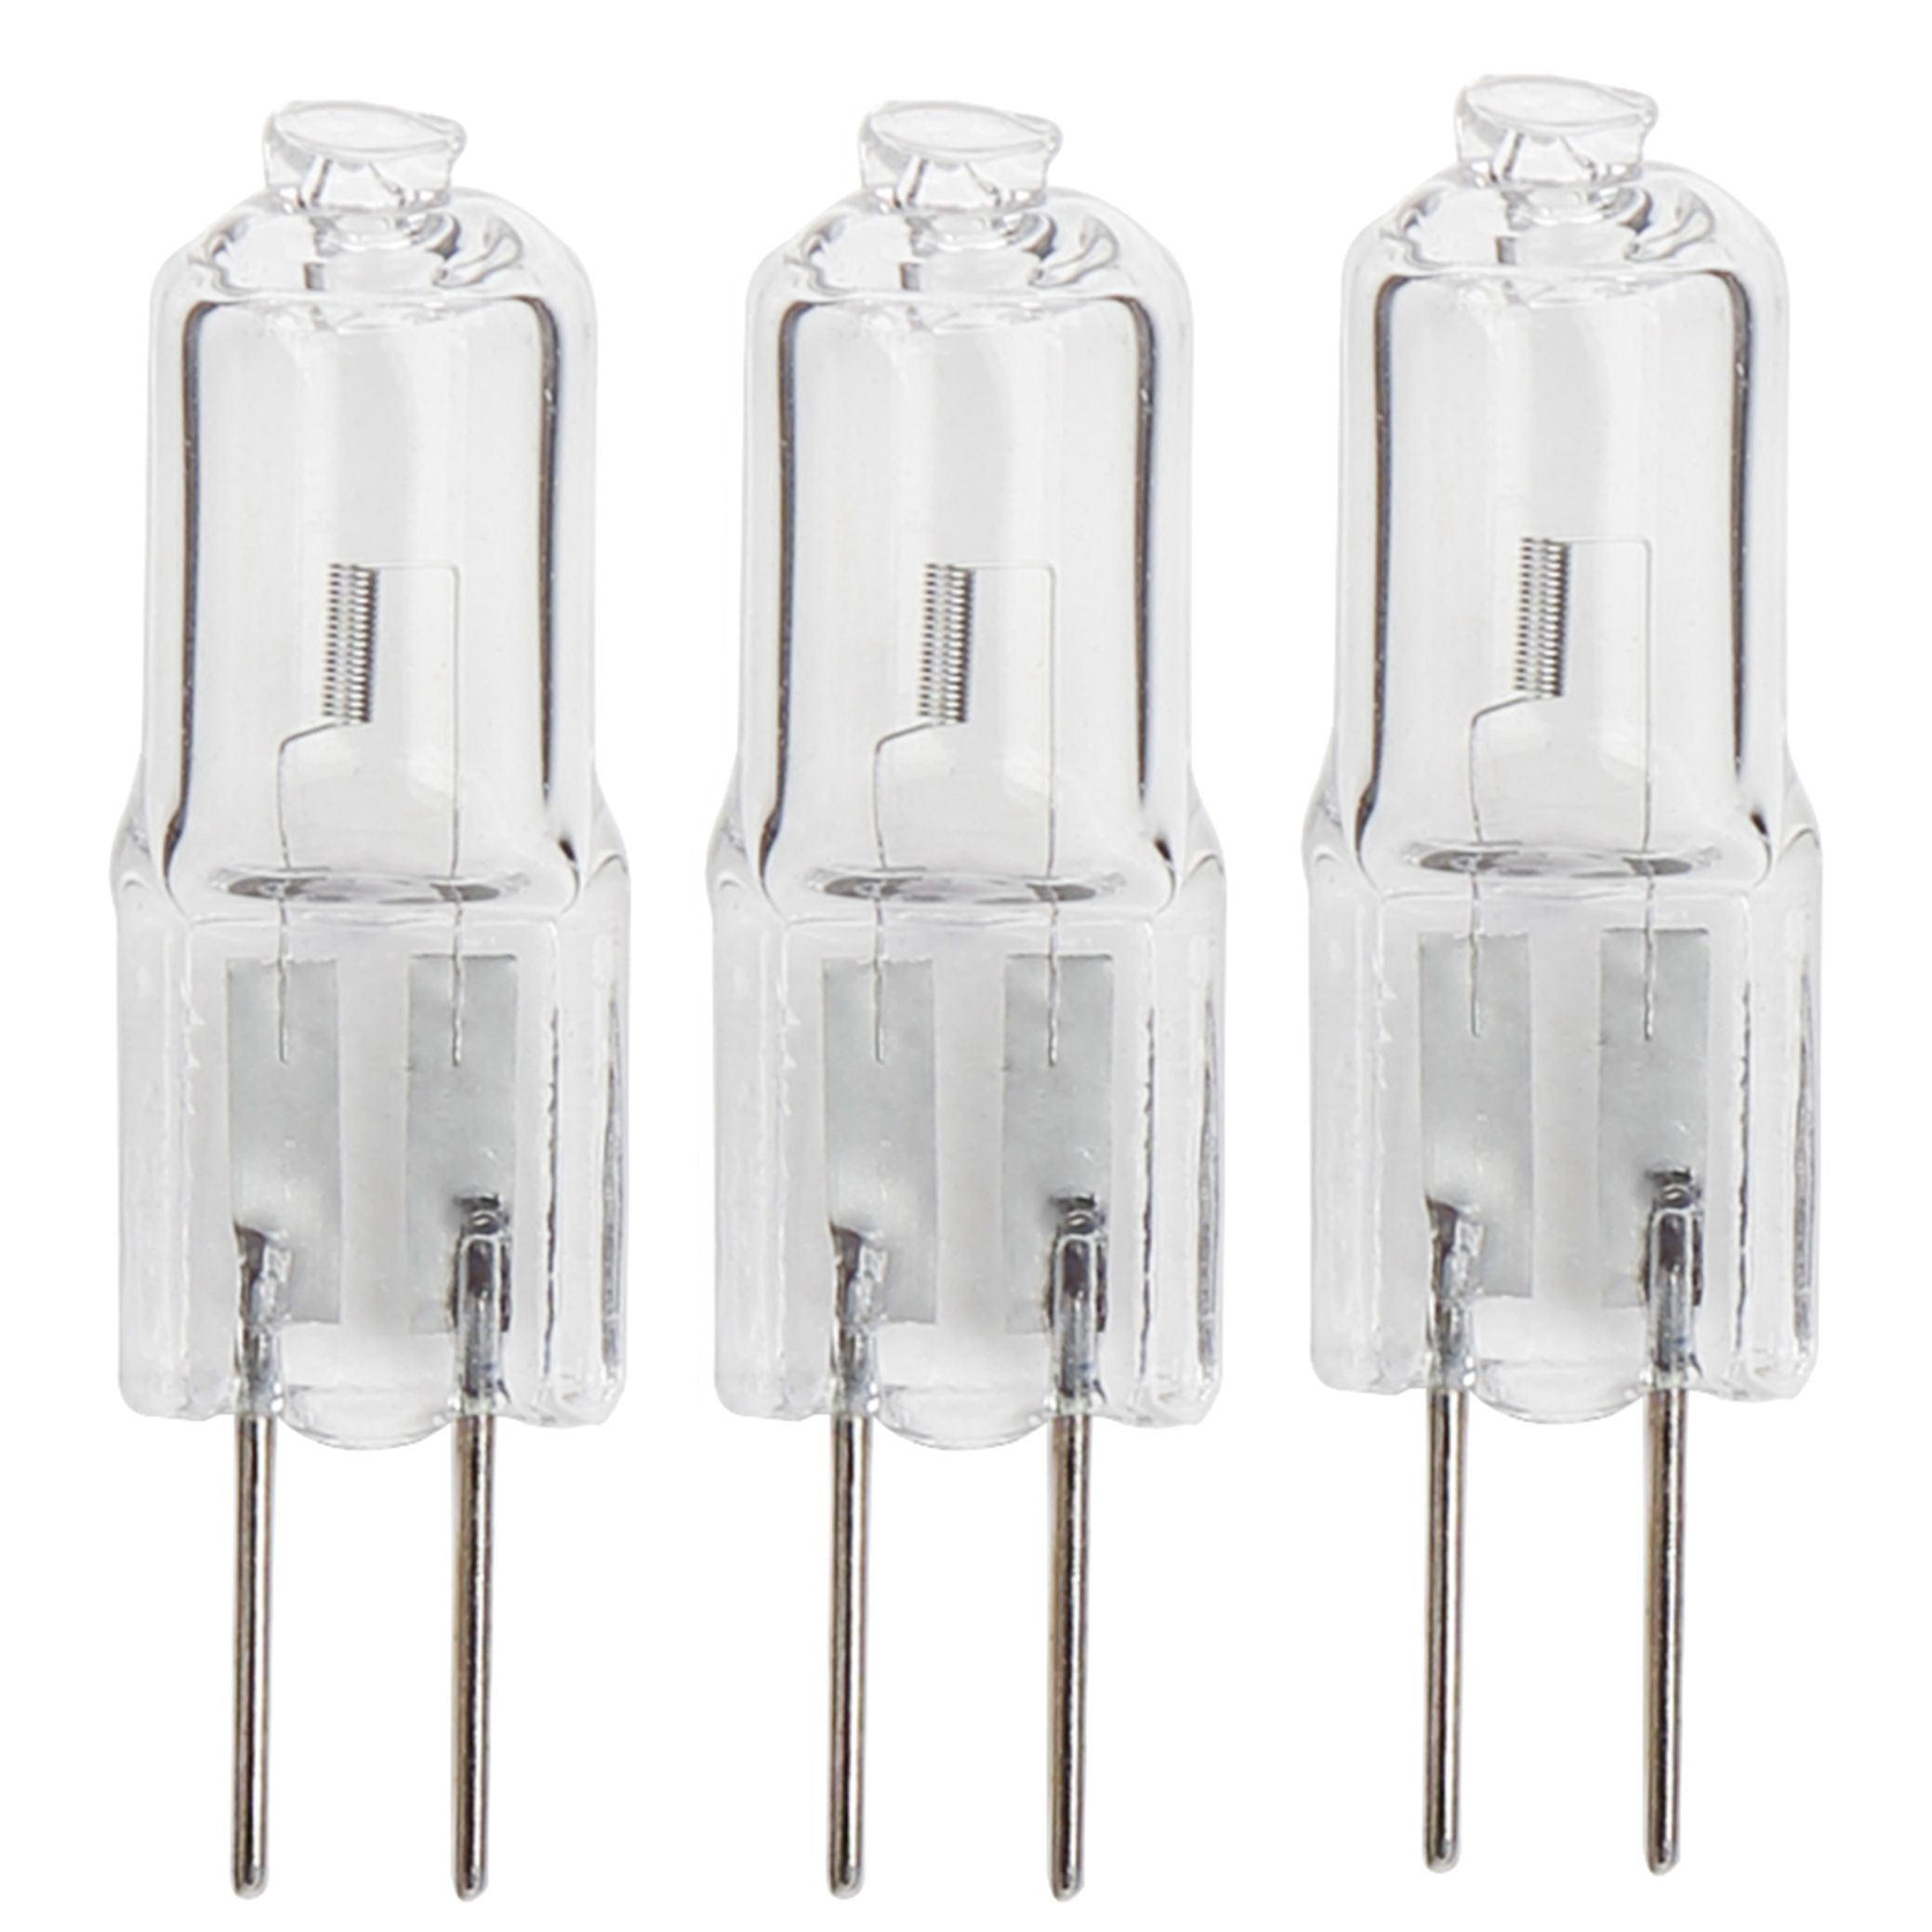 Diall G4 20w Halogen Eco Dimmable Capsule Light Bulb Pack Of 3 Departments Diy At B Q